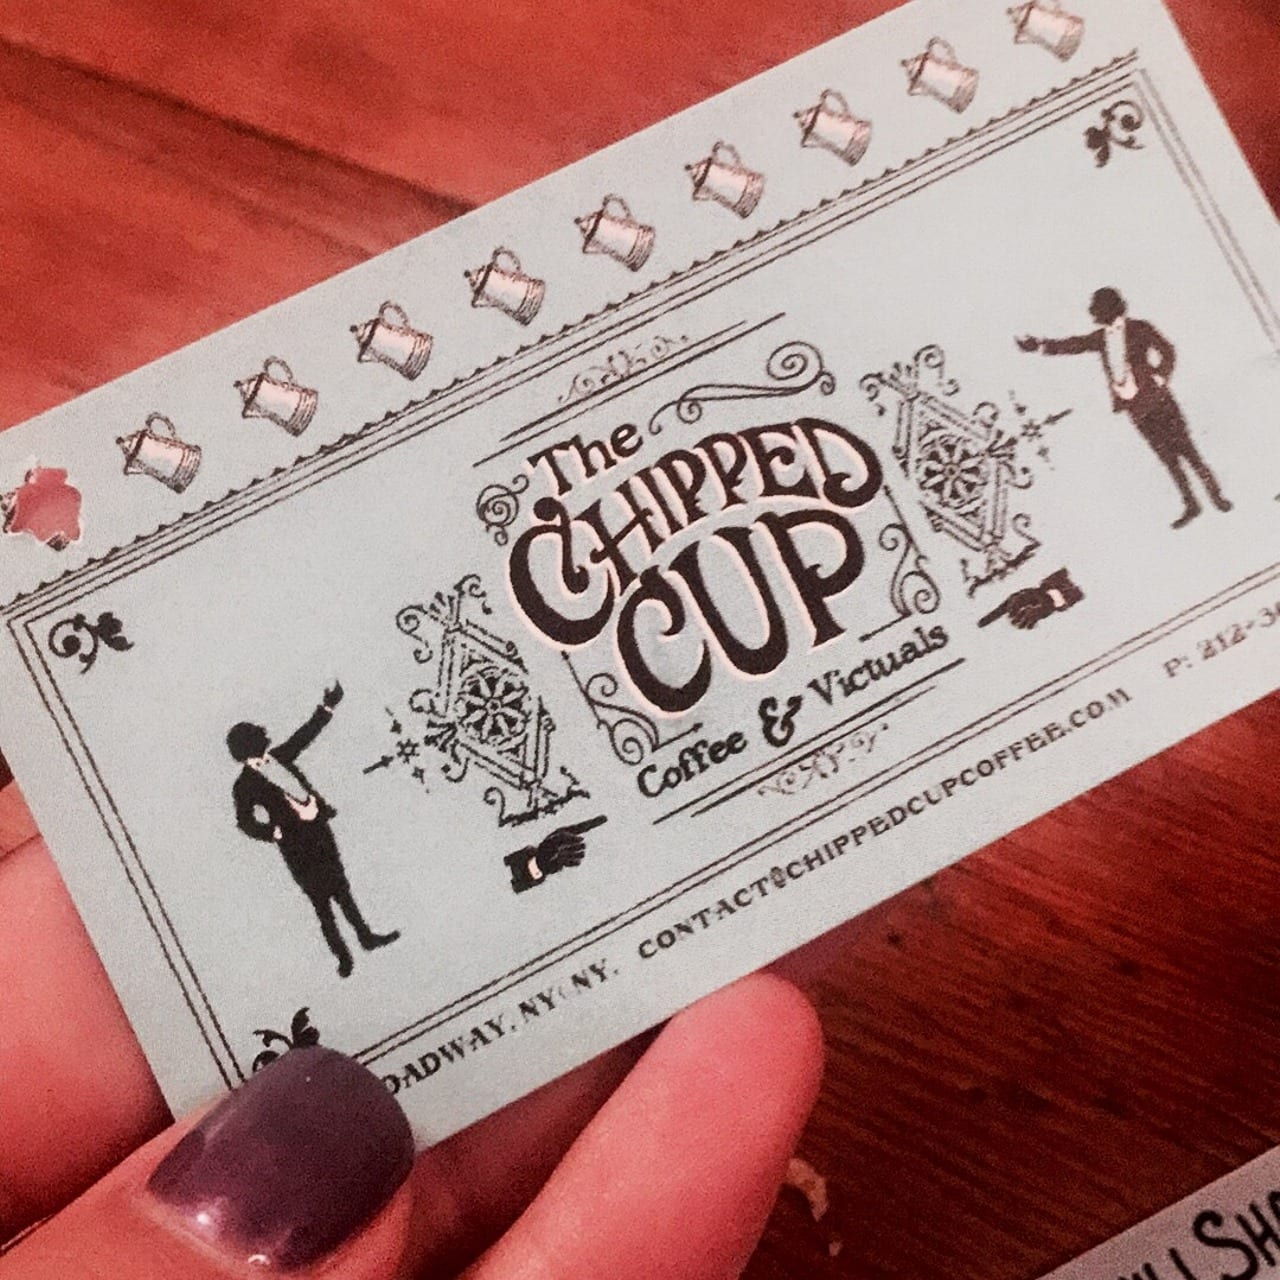 Chipped Cup